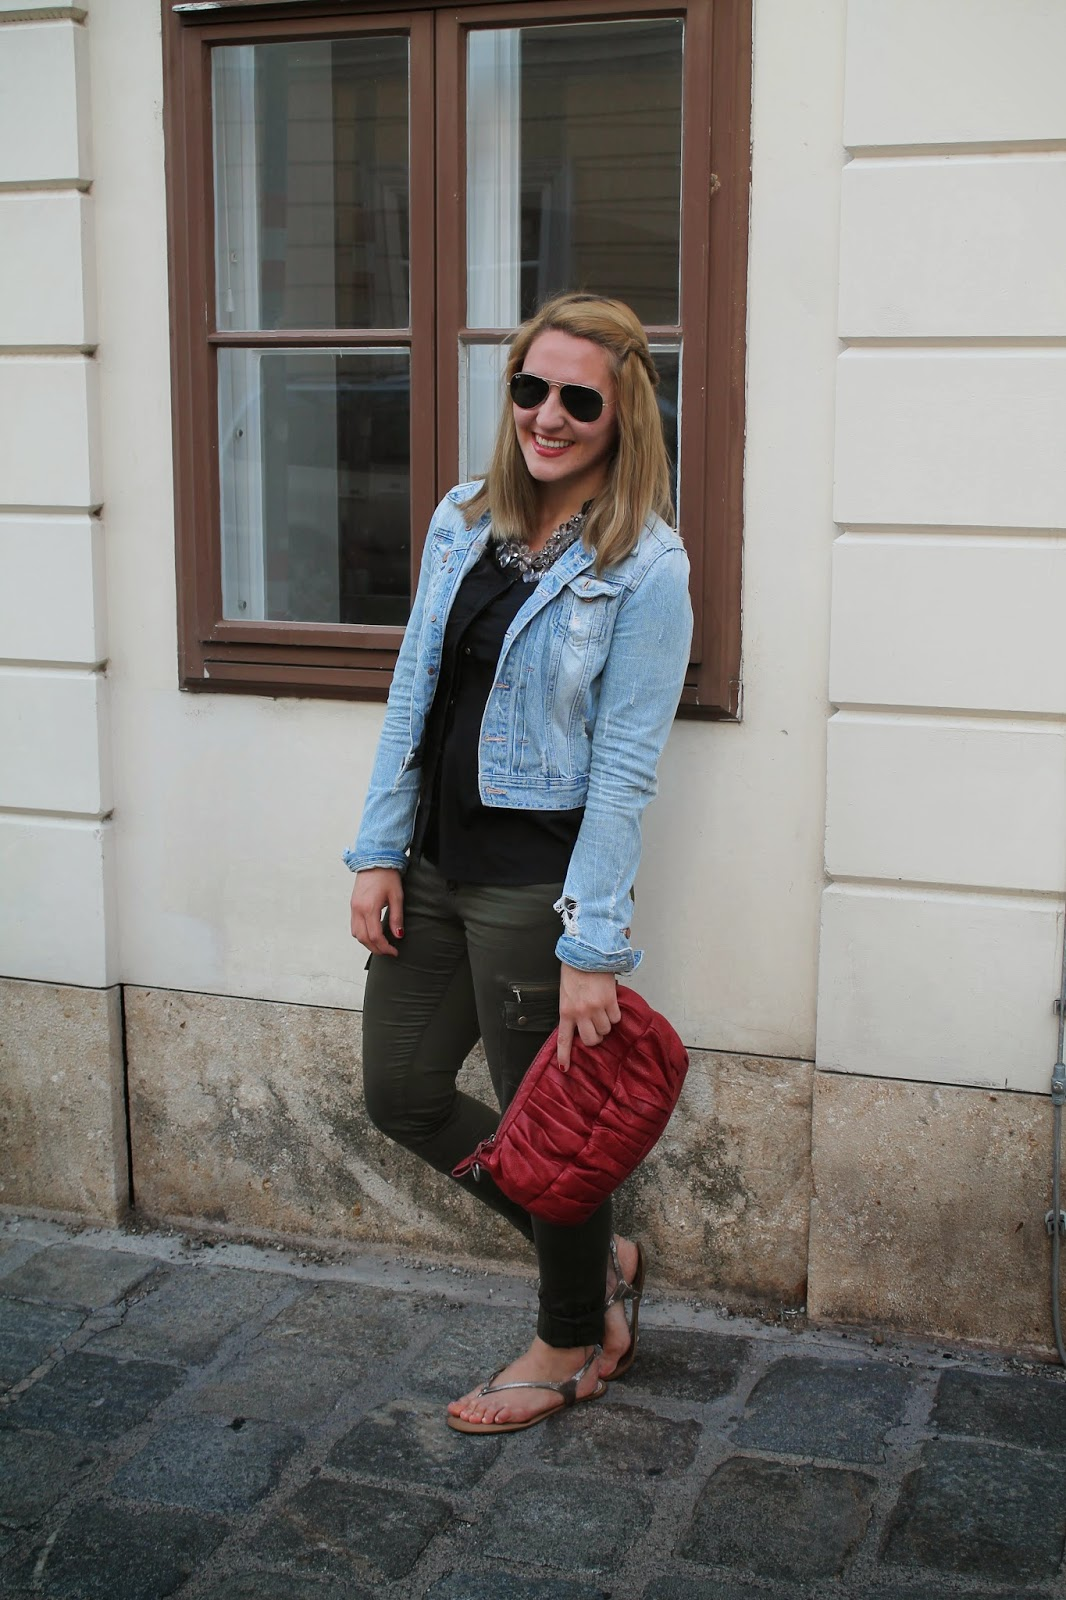 Fashionblogger Austria / Österreich / Deutsch / German / Kärnten / Carinthia / Klagenfurt / Köttmannsdorf / Spring Look / Classy / Edgy / Summer / Summer Style 2014 / Summer Look / Fashionista Look / Oasap Statement Necklace / Zara / Only / H&M / Ray Ban /